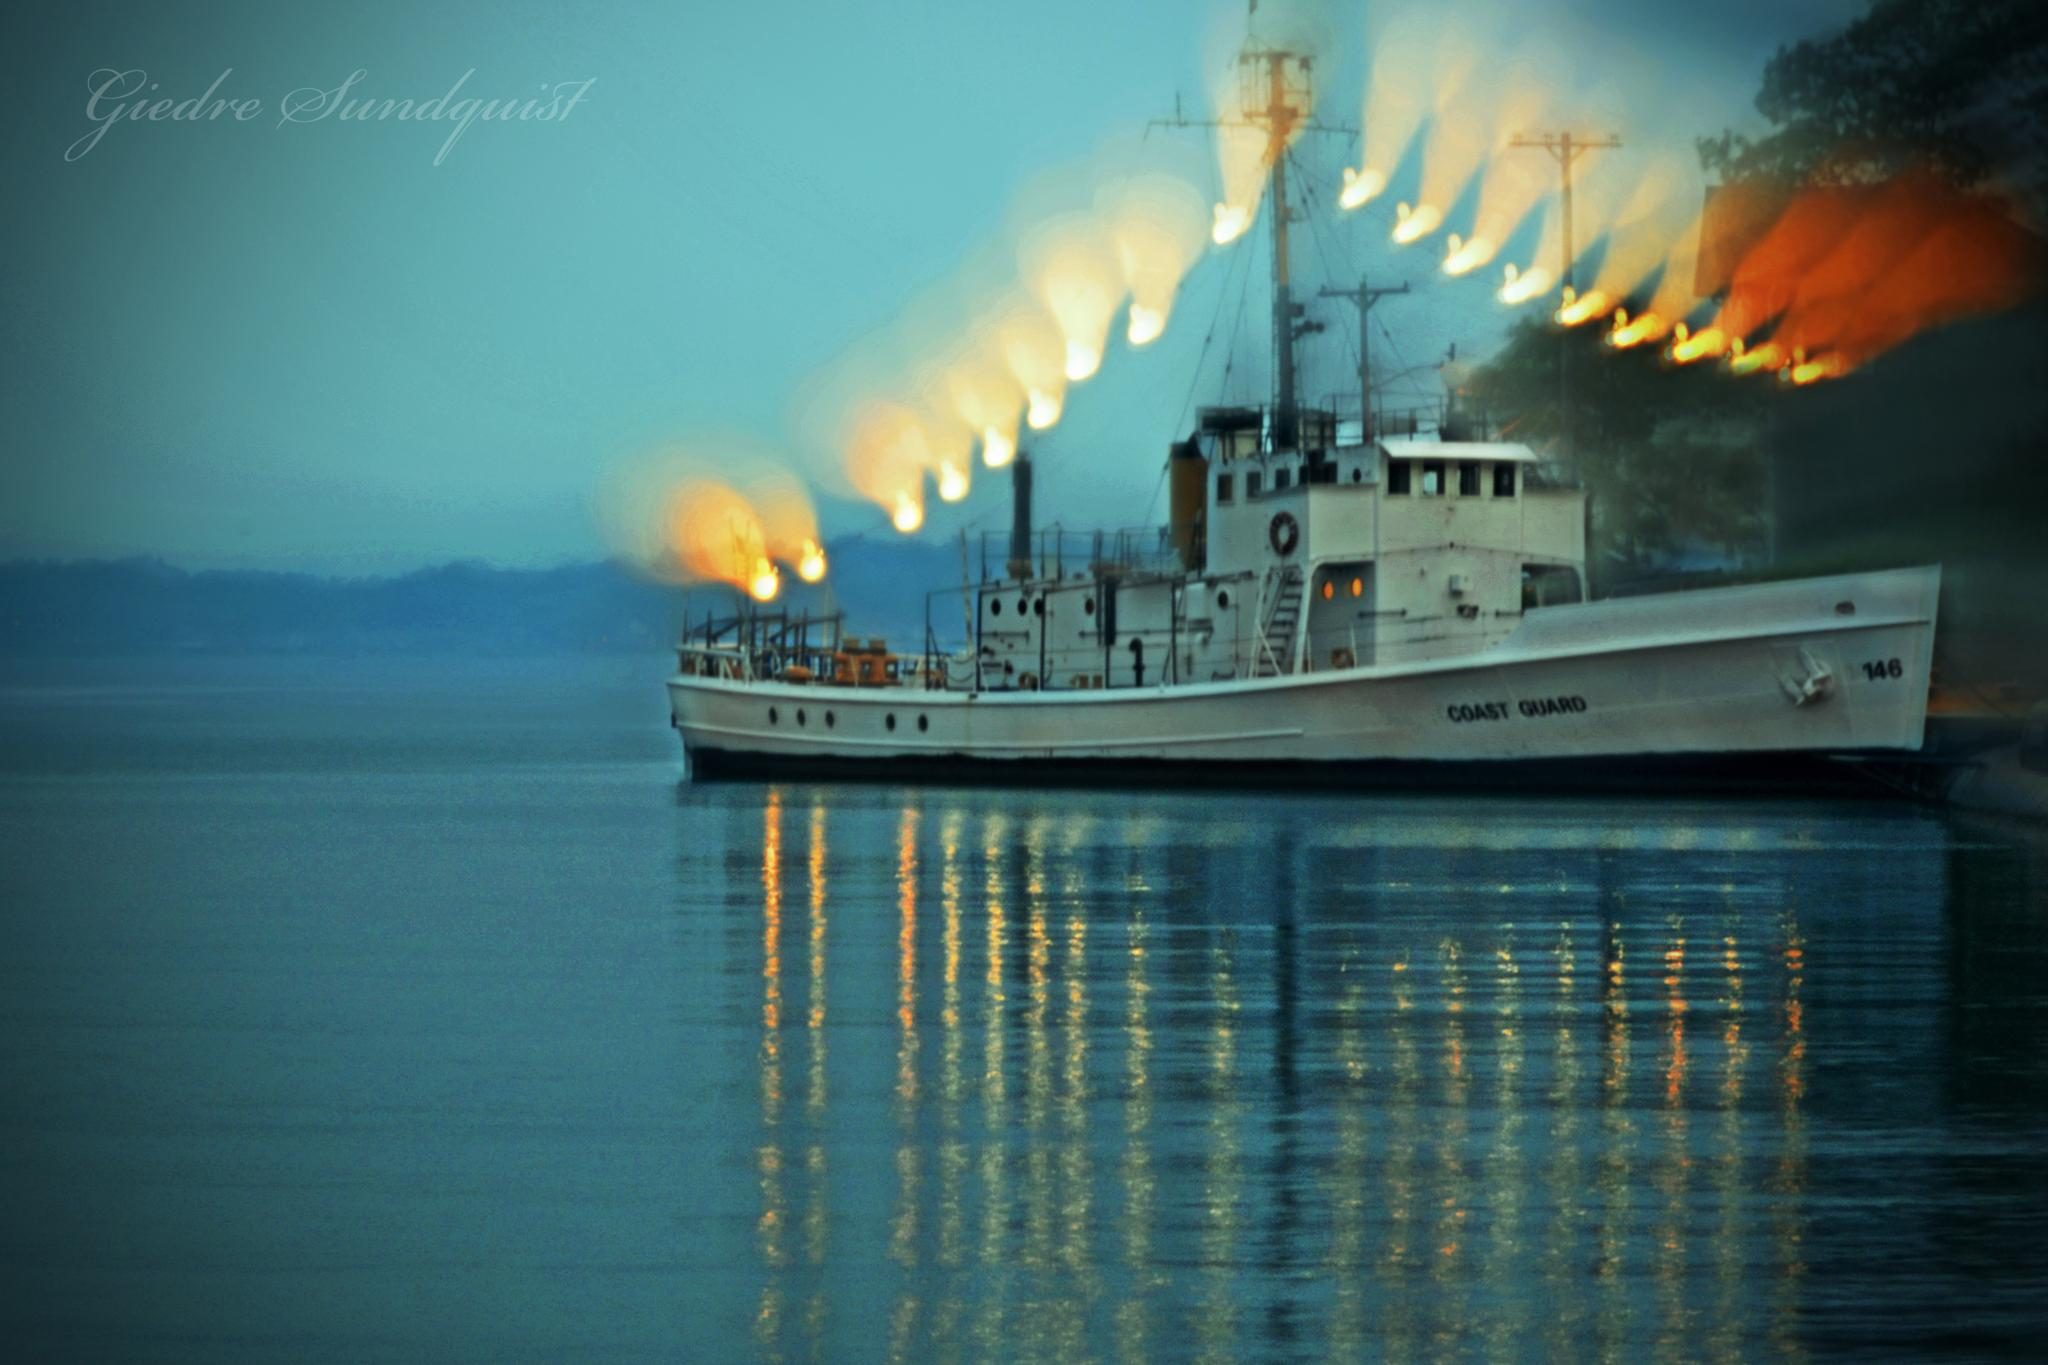 Boat lights by giedre.sundquist